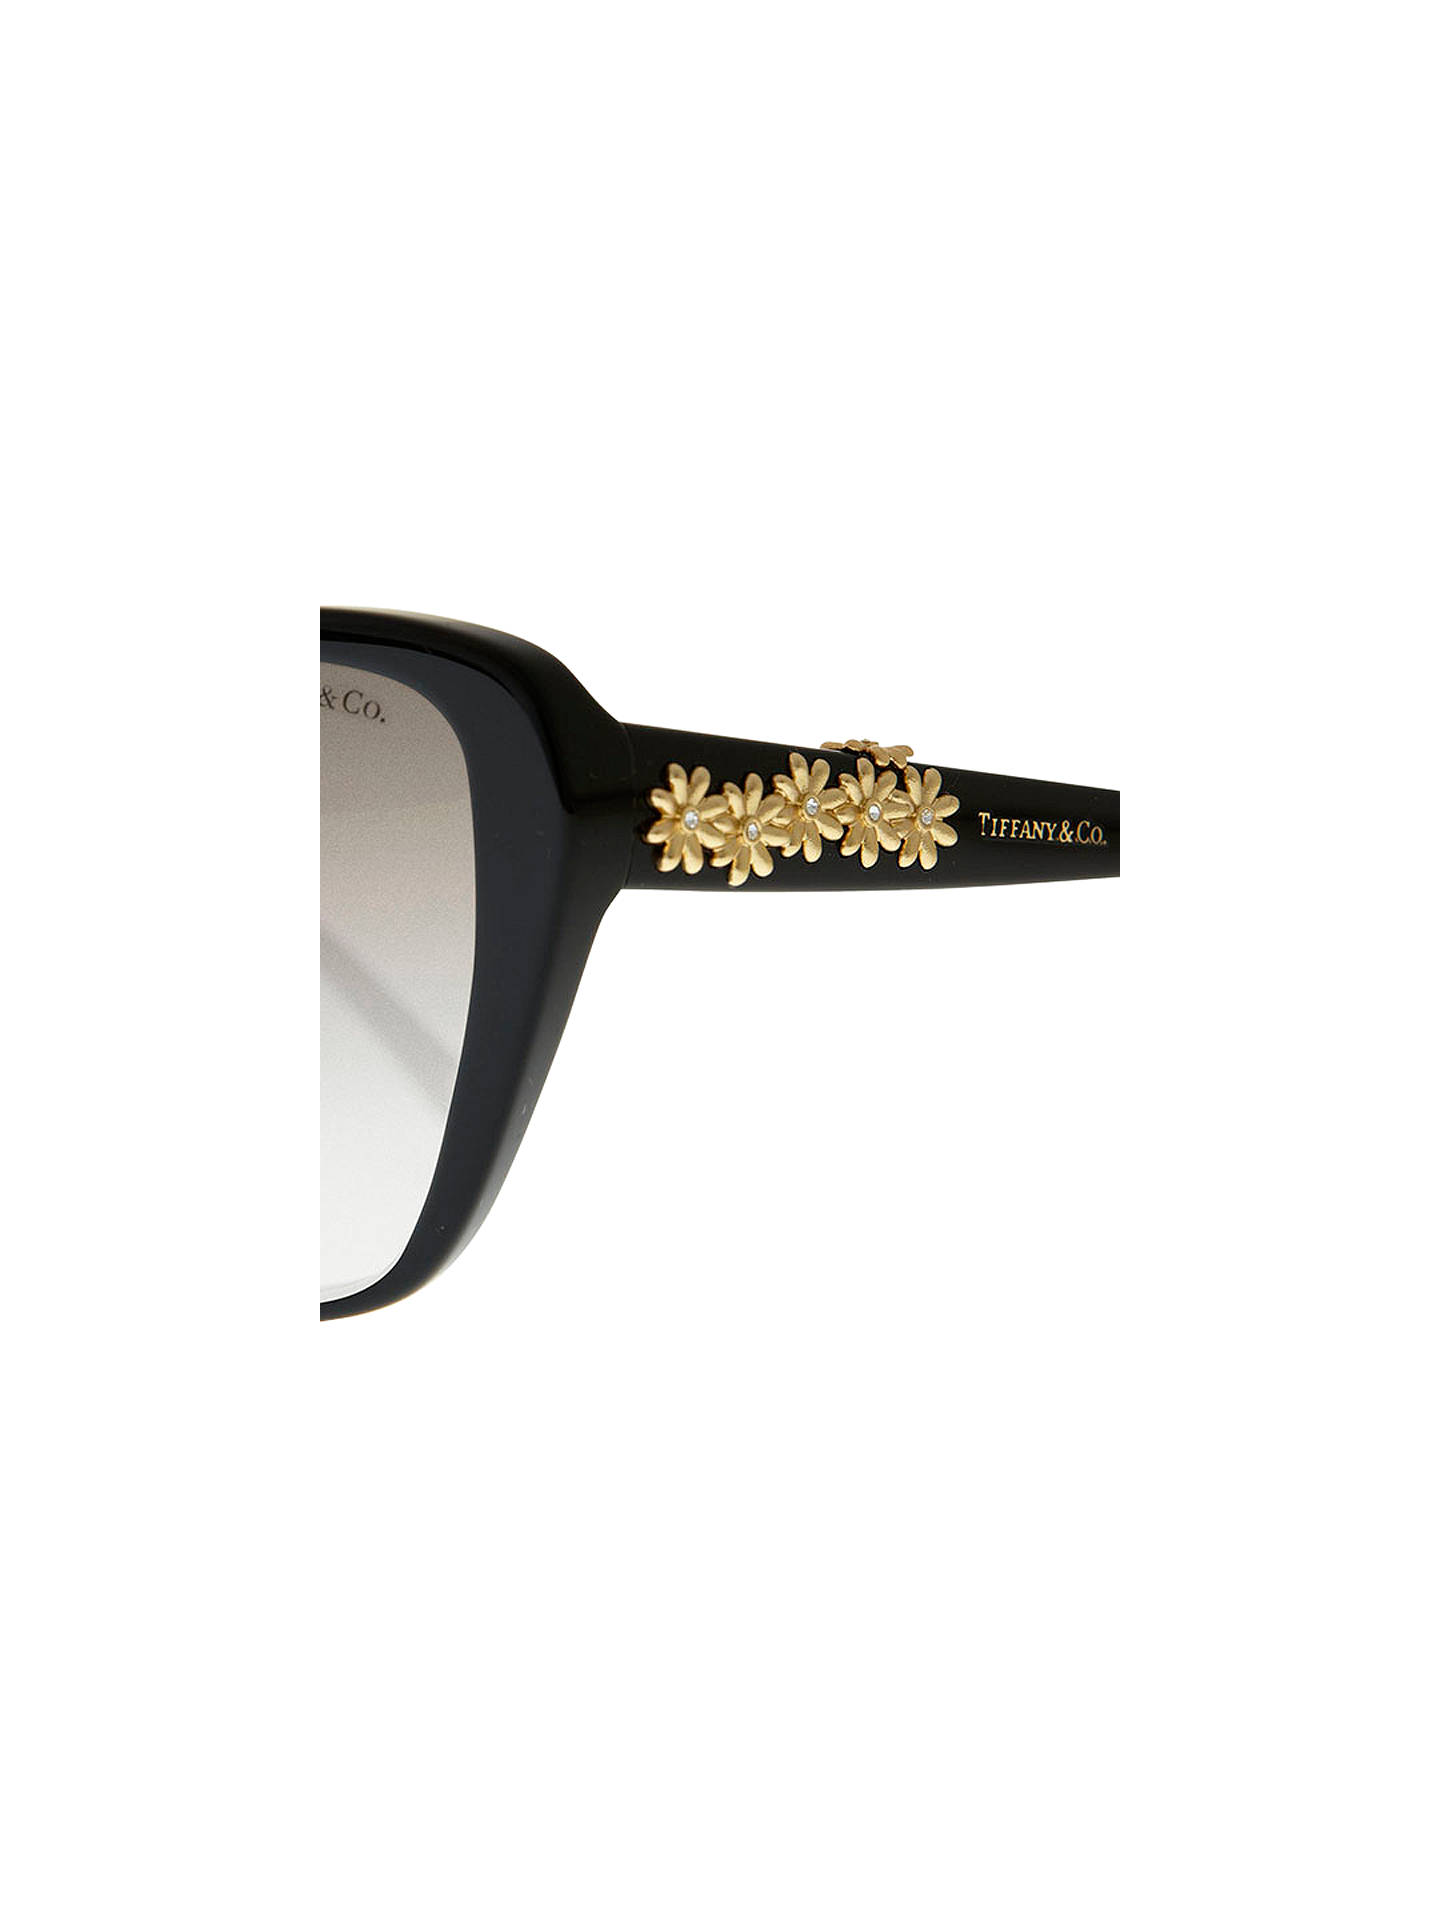 ebfdd4a8e7f7 ... Buy Tiffany & Co TF4096B Multi Daisy Sunglasses, Black Online at  johnlewis.com